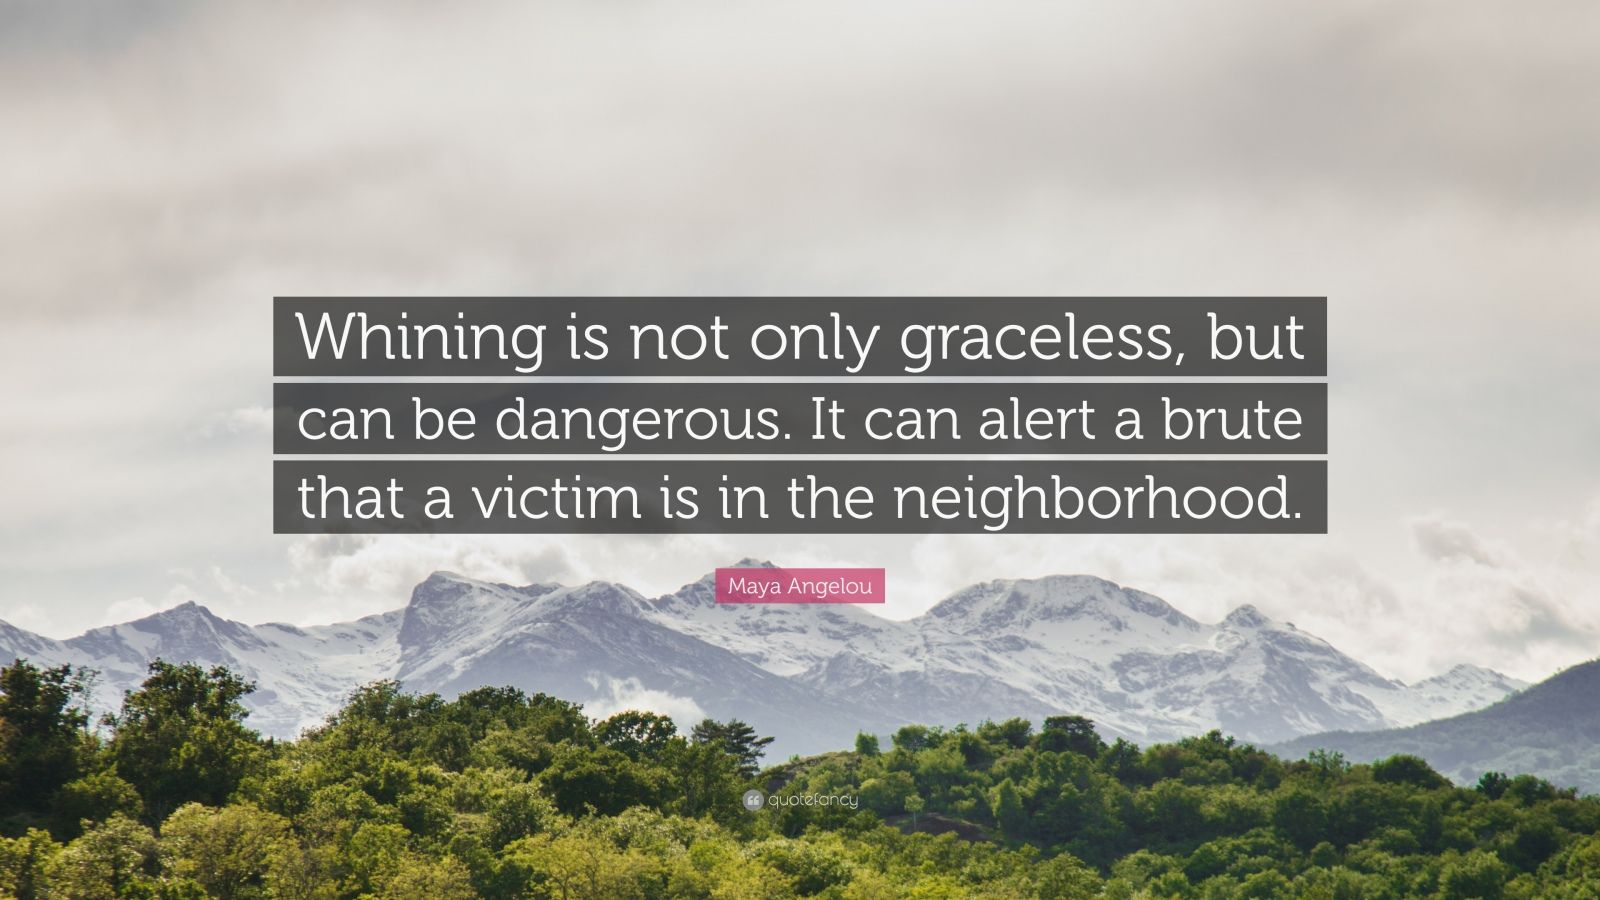 """Maya Angelou Quote: """"Whining is not only graceless, but can be dangerous. It can alert a brute that a victim is in the neighborhood."""""""